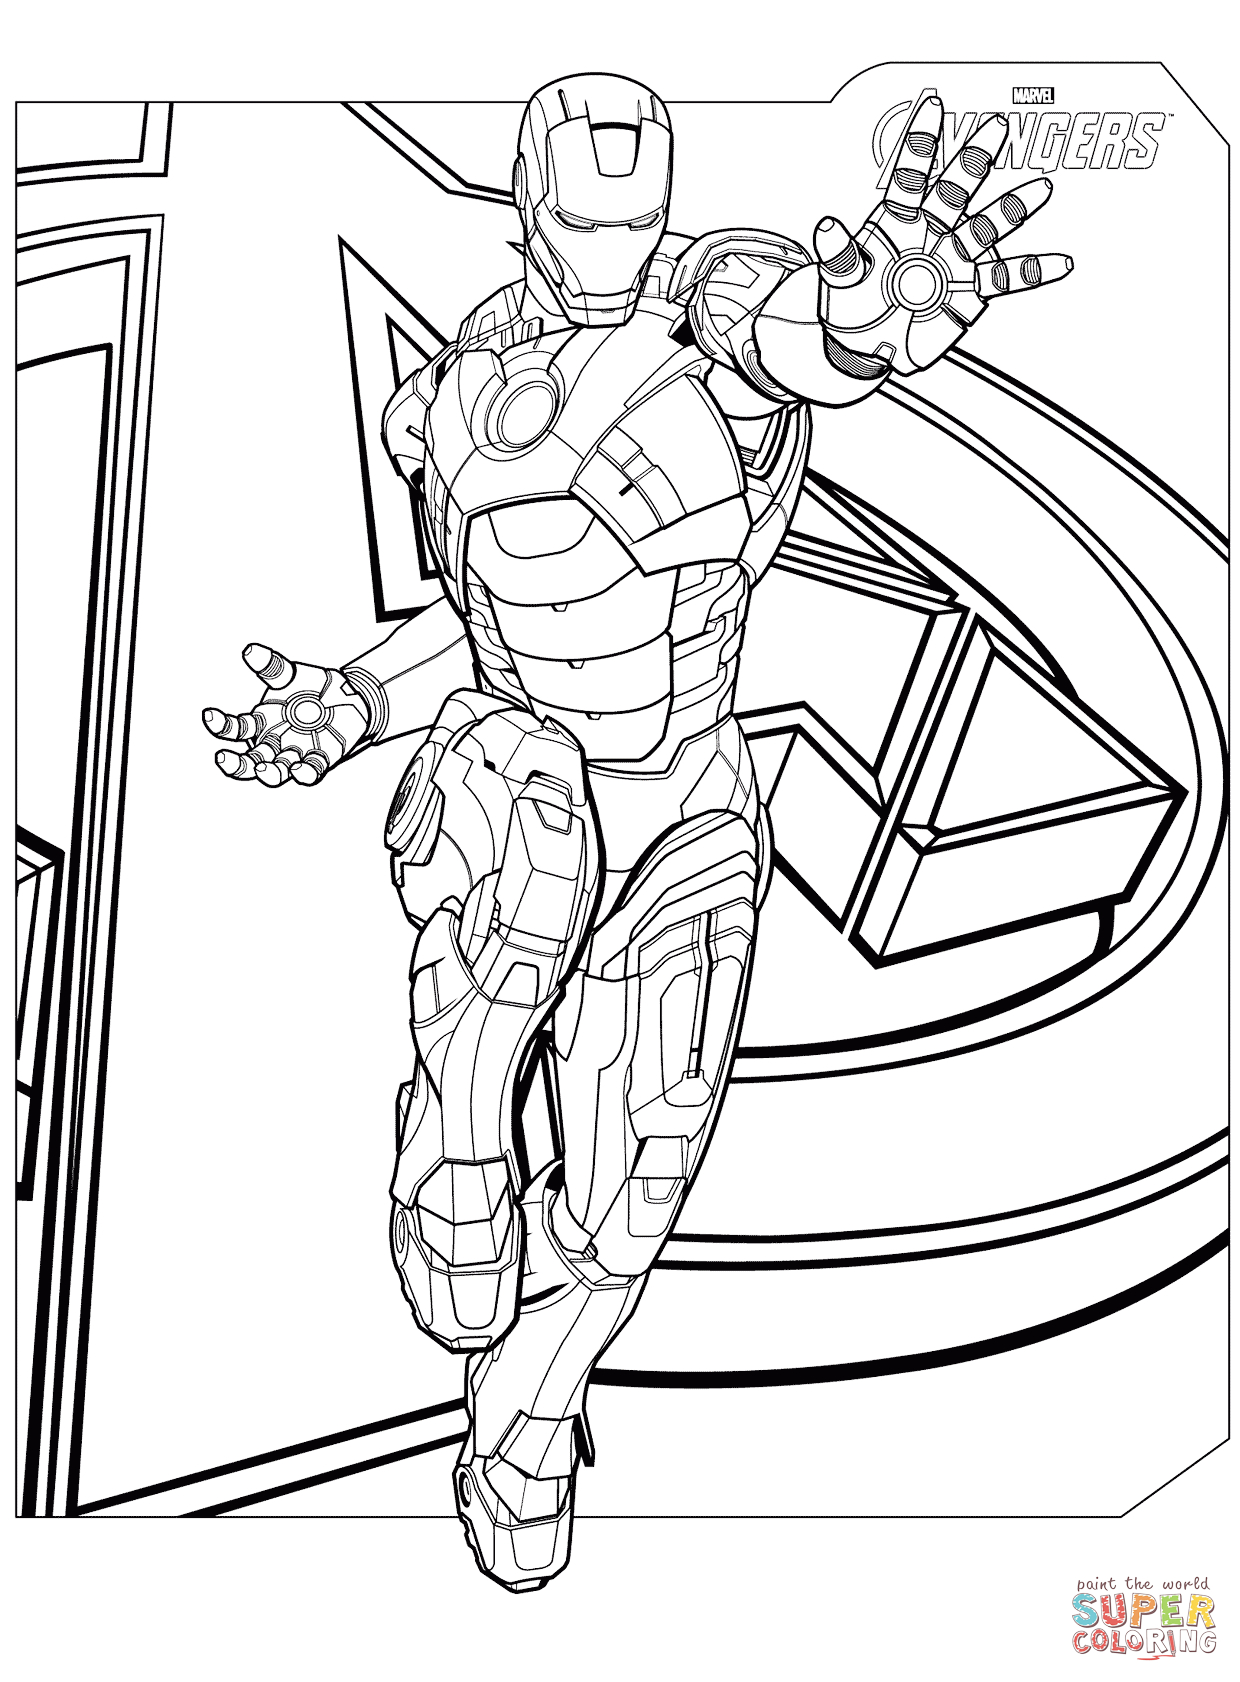 Printable Ironman Coloring Pages Avengers Iron Man Coloring Page Free Printable Coloring Pages